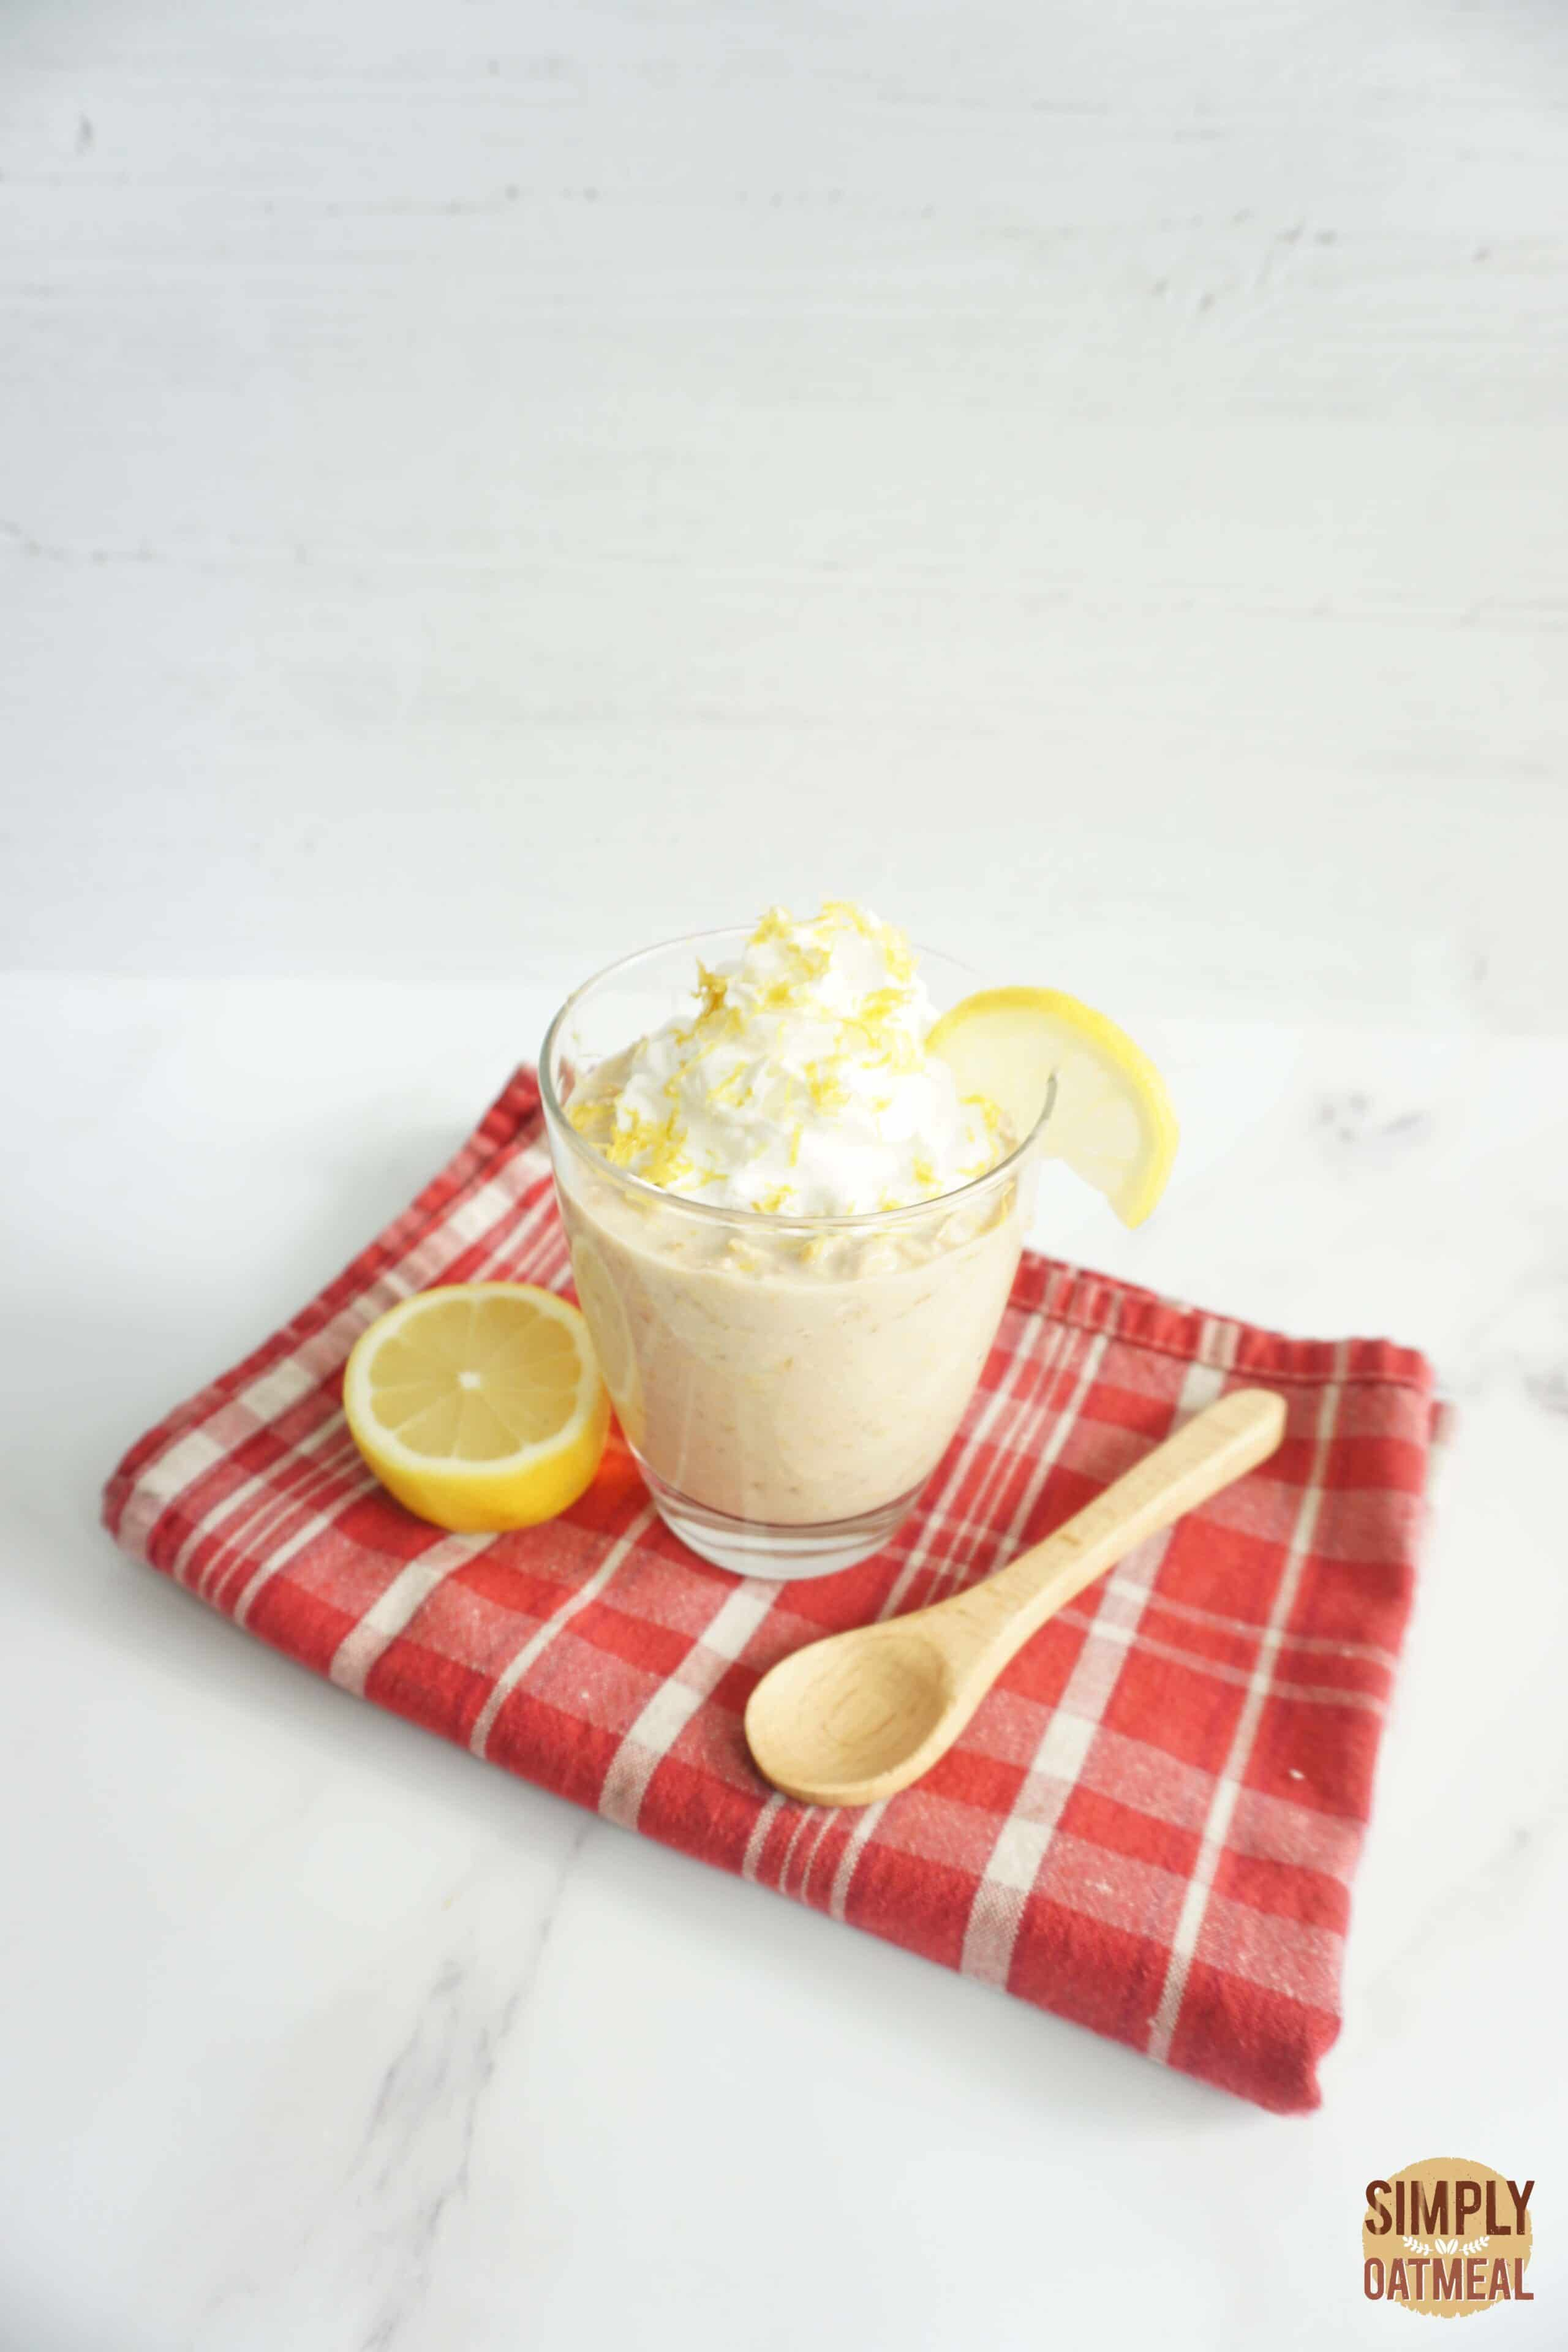 Serving of lemonade overnight oats in a glass cup topped with lemon zest and fresh lemon with a wooden spoon on the side